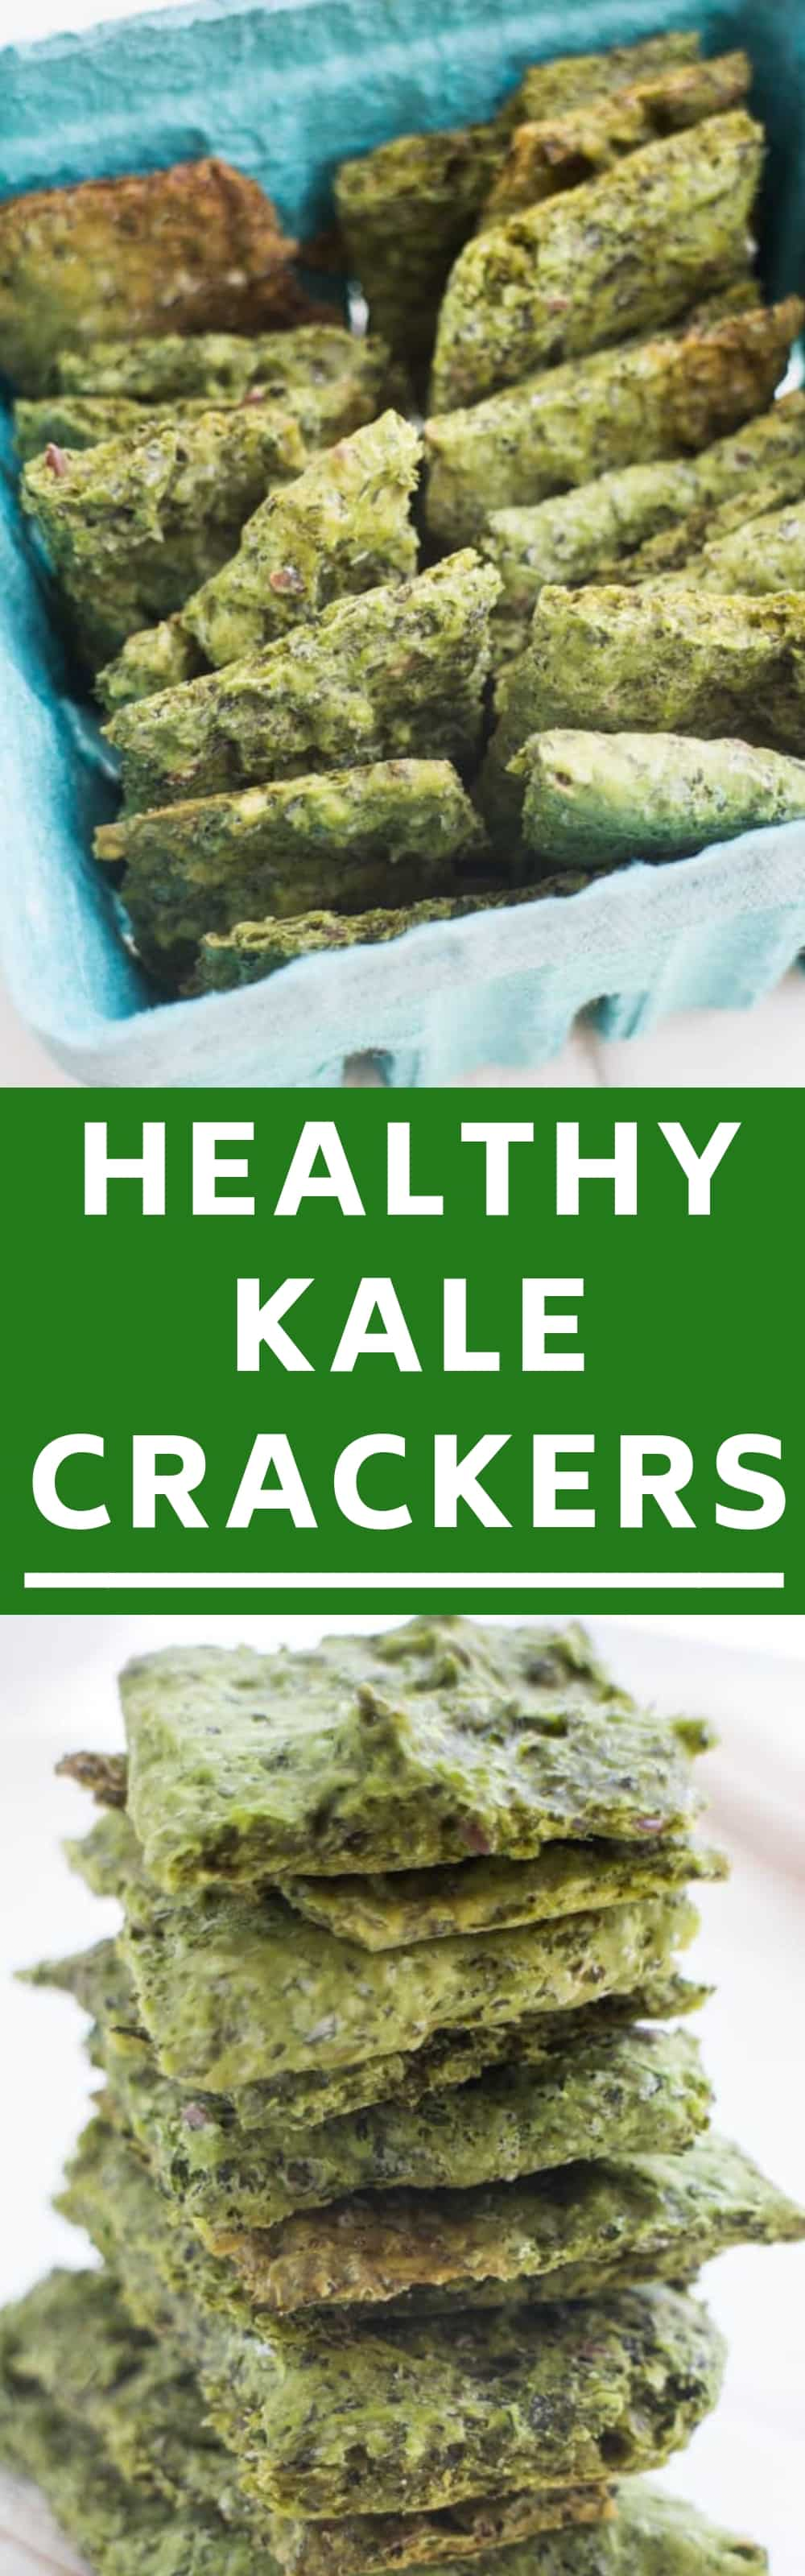 Easy homemade kale crackers recipe made by combining kale and flour.  They are sprinkled with salt to make a healthy snack! I love these as a healthy, low carb alternative to potato chips!